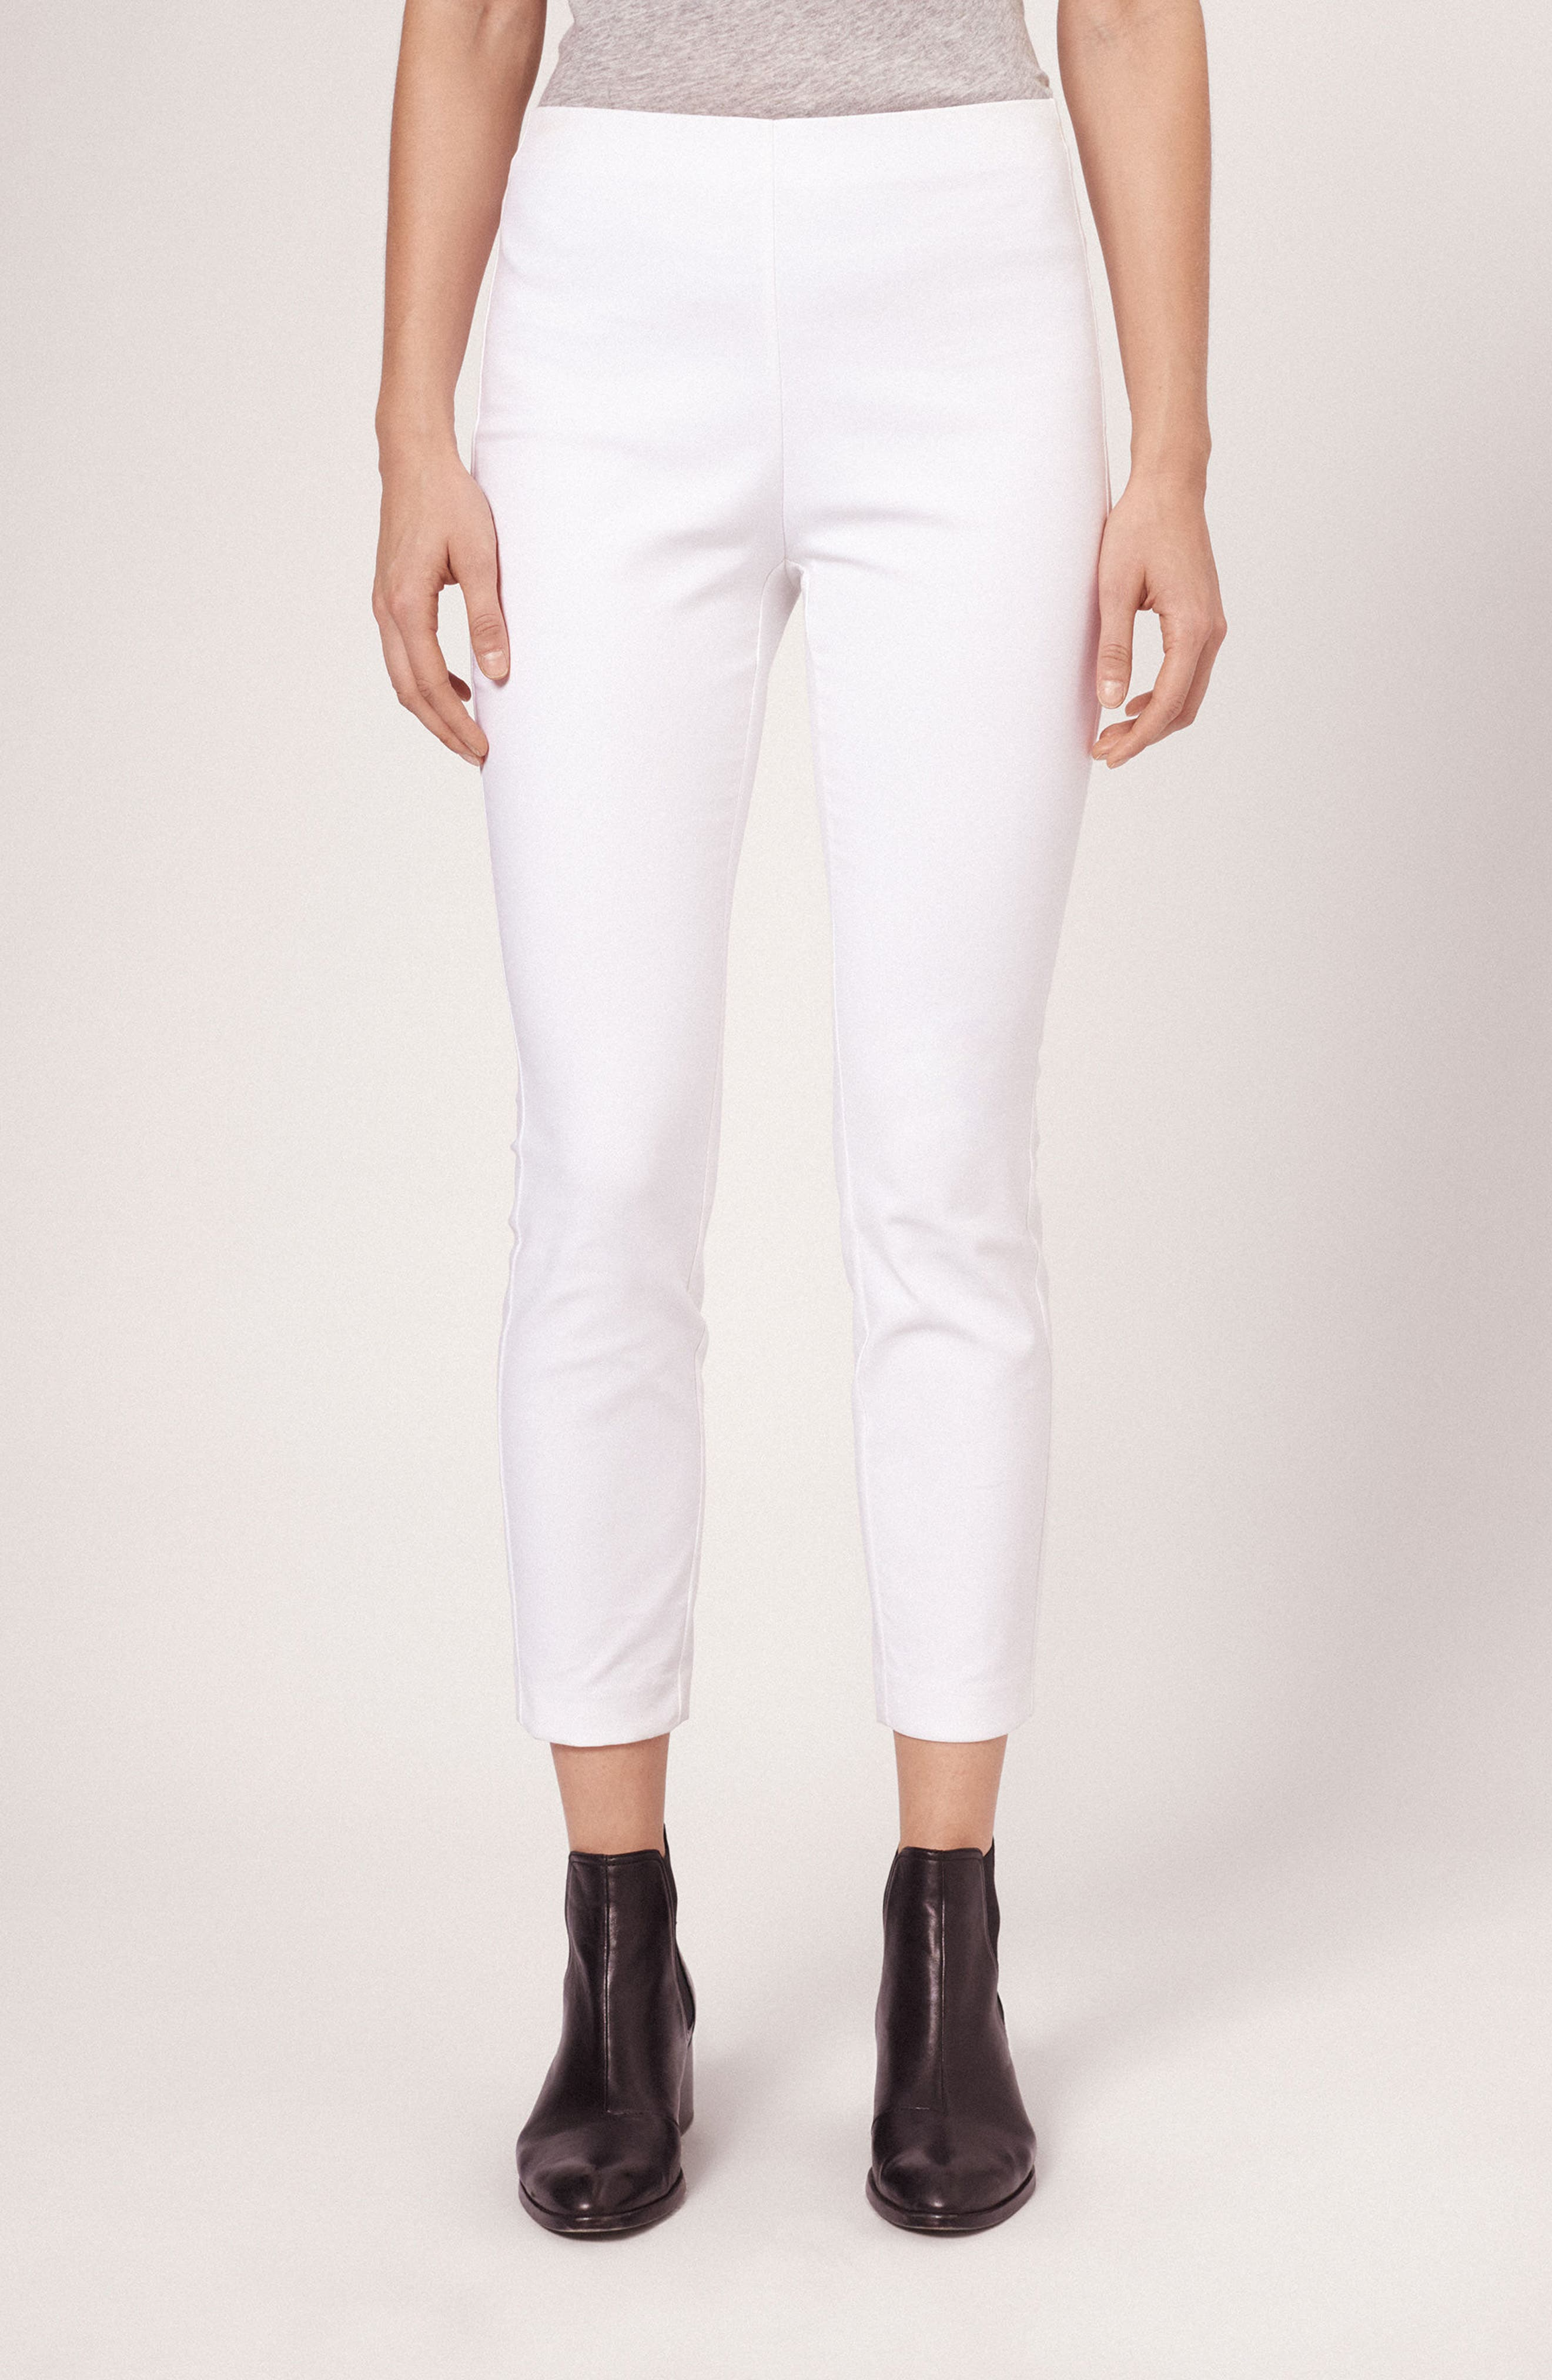 'Simone' Slim Ankle Pants,                             Alternate thumbnail 14, color,                             WHITE